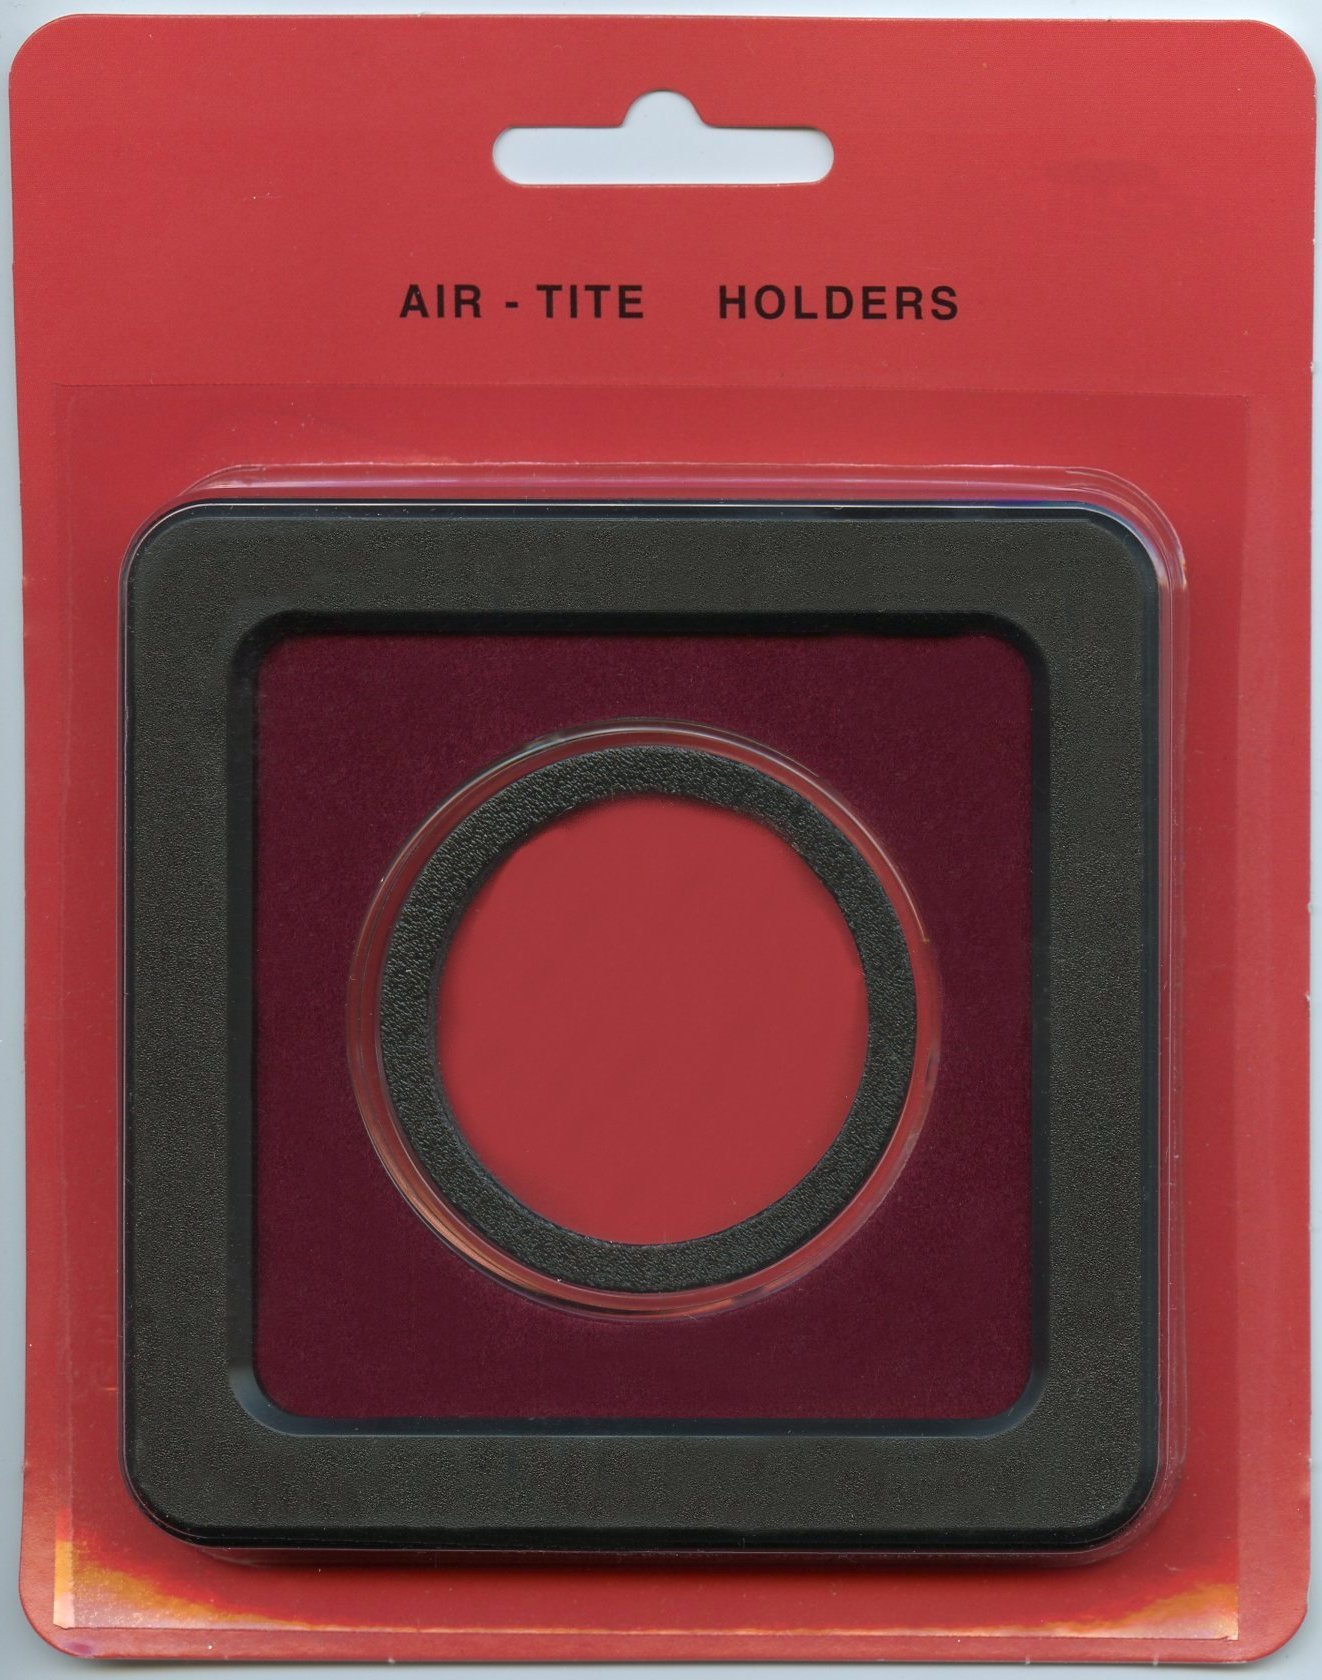 Air-Tite Coin Frame Holders